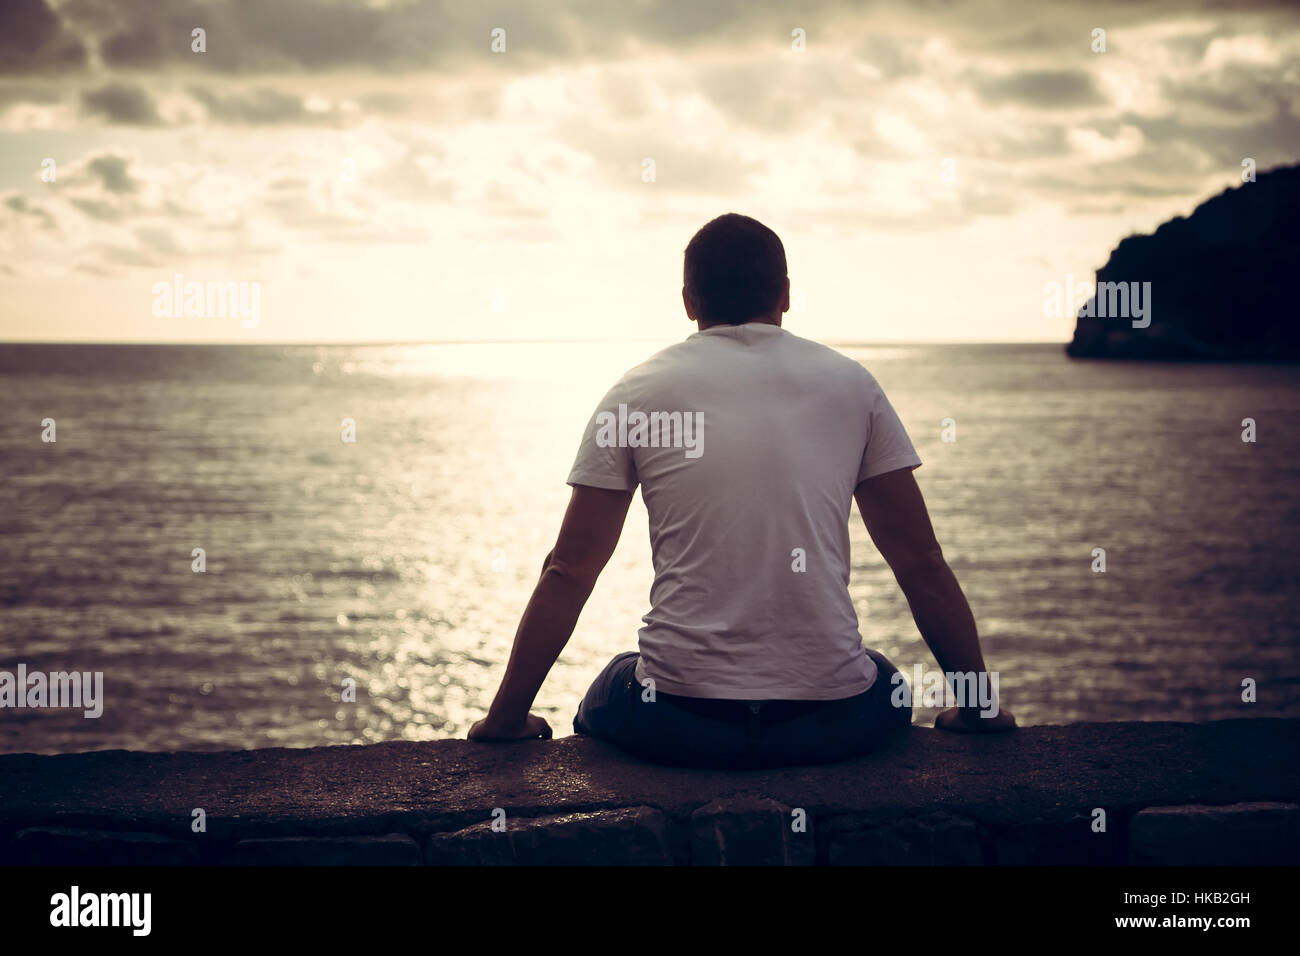 Lonely man looking with hope at horizon with sunlight during sunset with effect of light at the end of tunnel - Stock Image